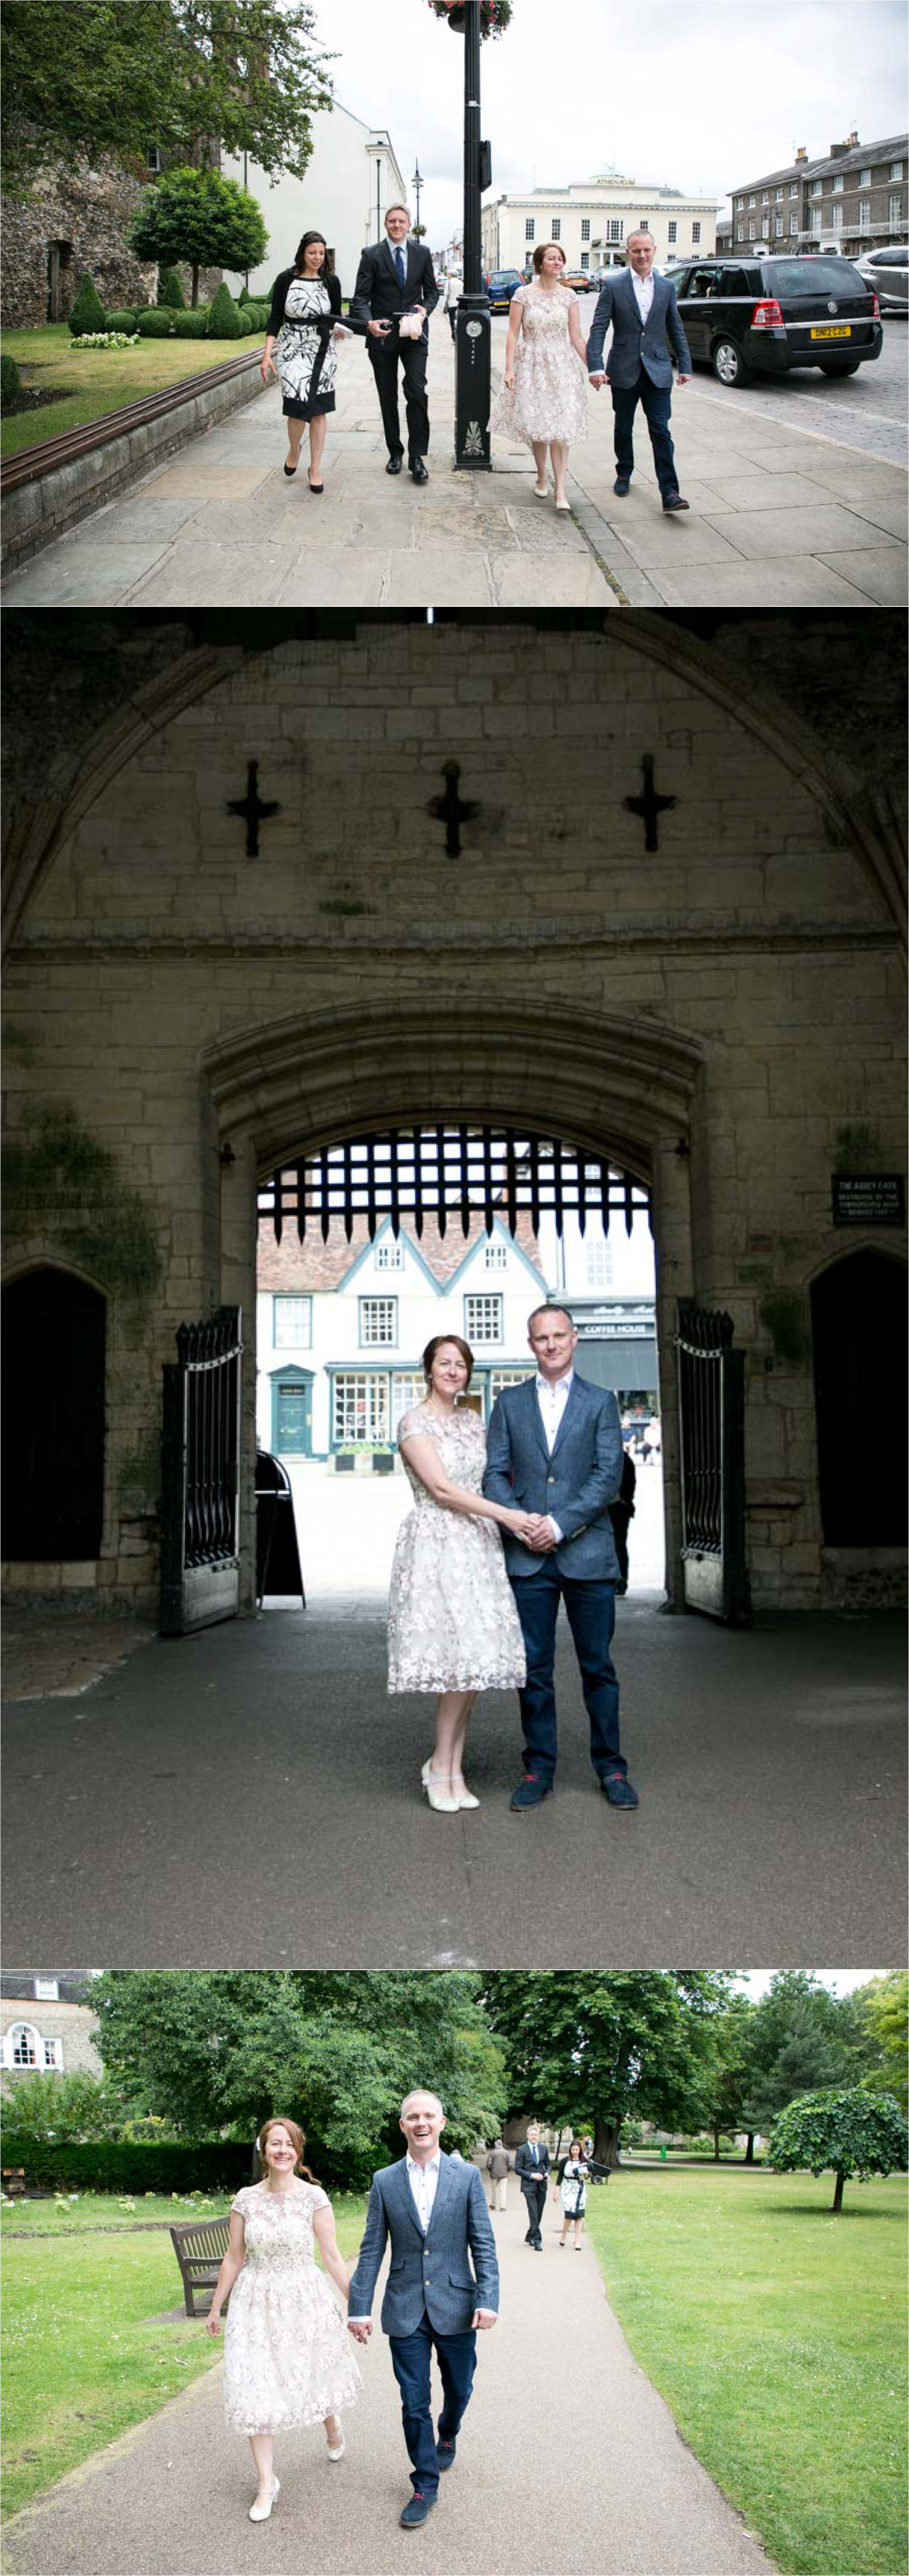 intimate wedding photography in bury st edmunds